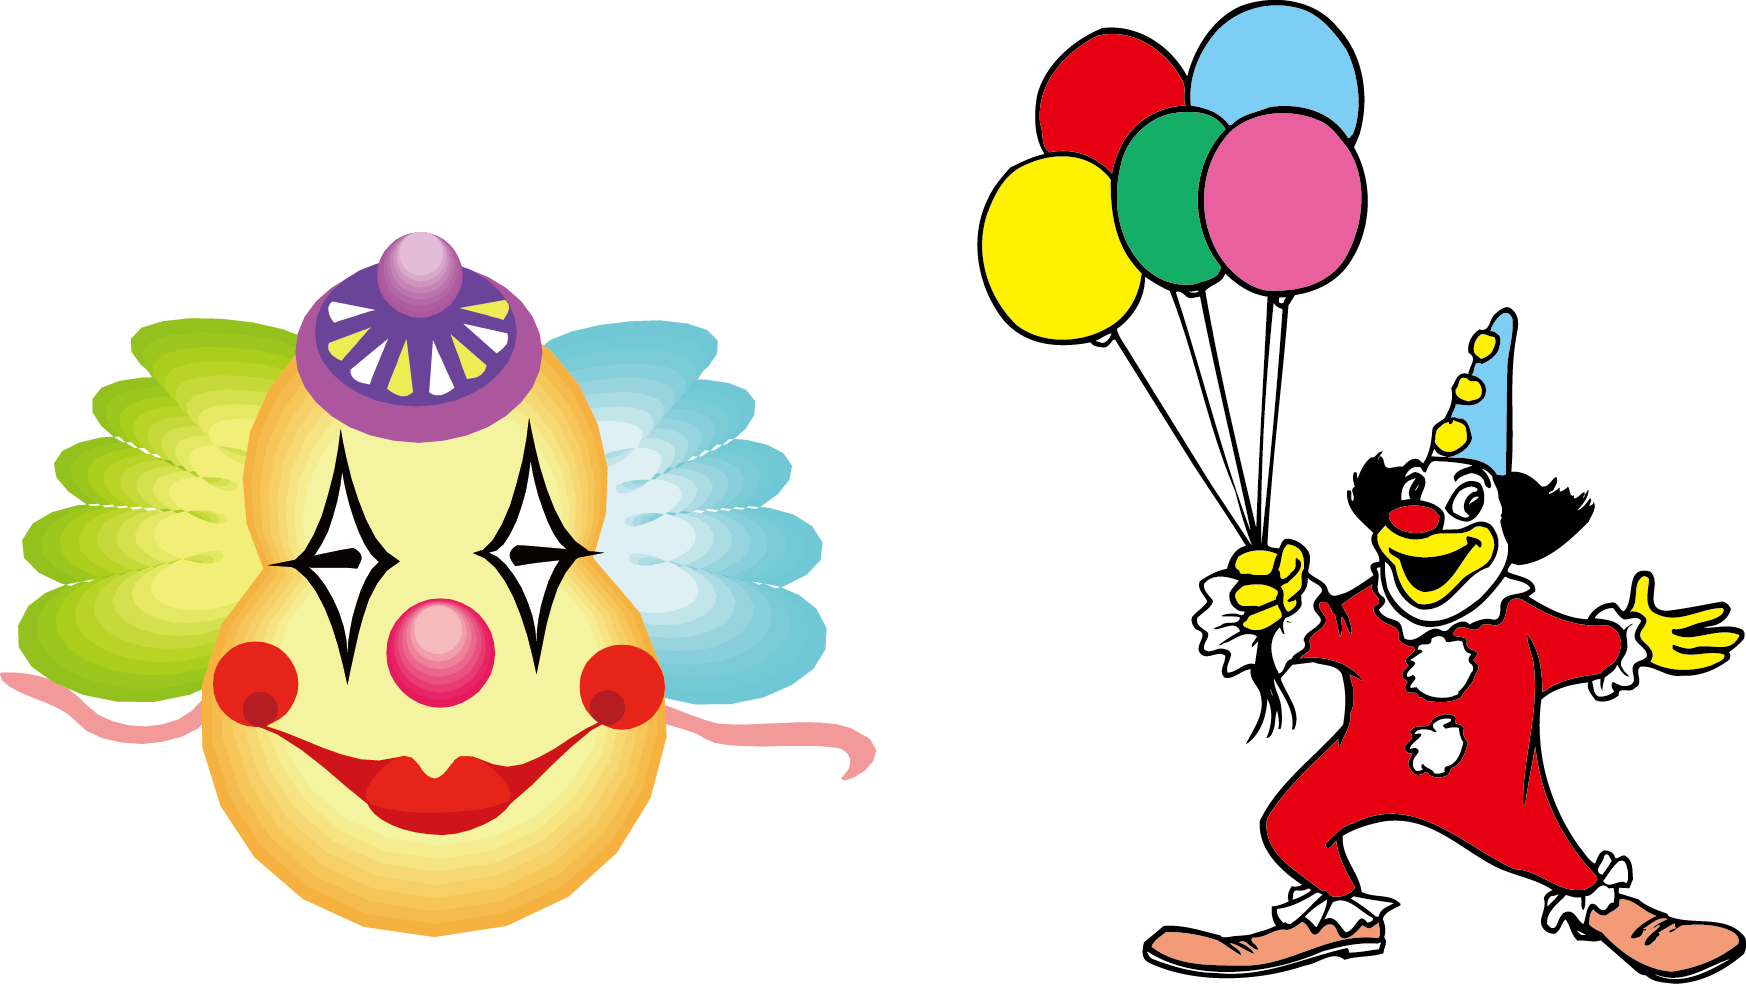 Clown cartoon transprent png. Clipart balloon circus